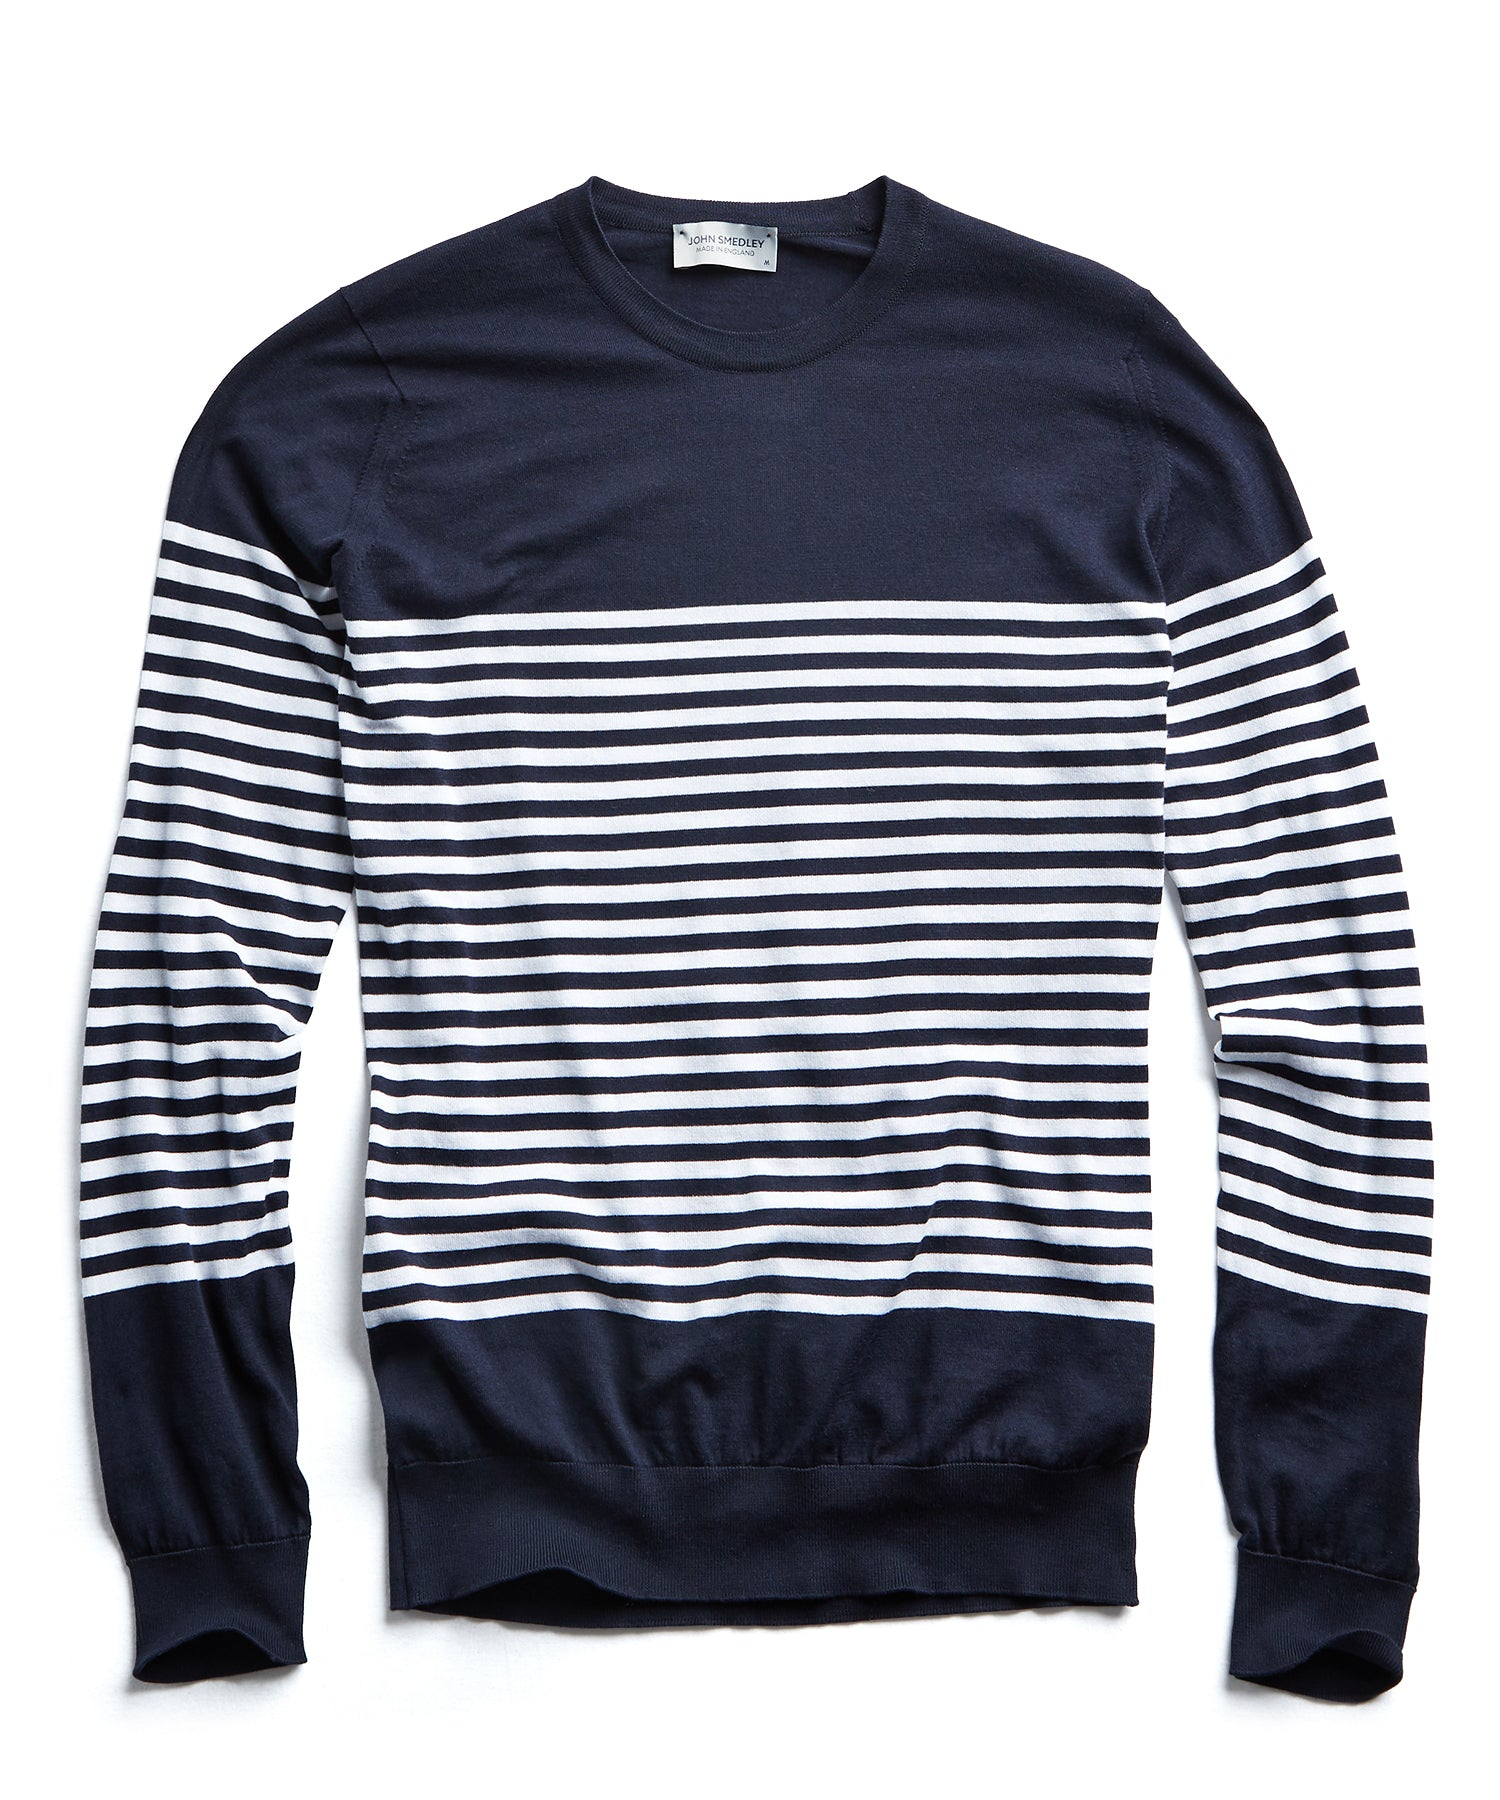 John Smedley Sea Island Cotton Striped Sweater in Navy